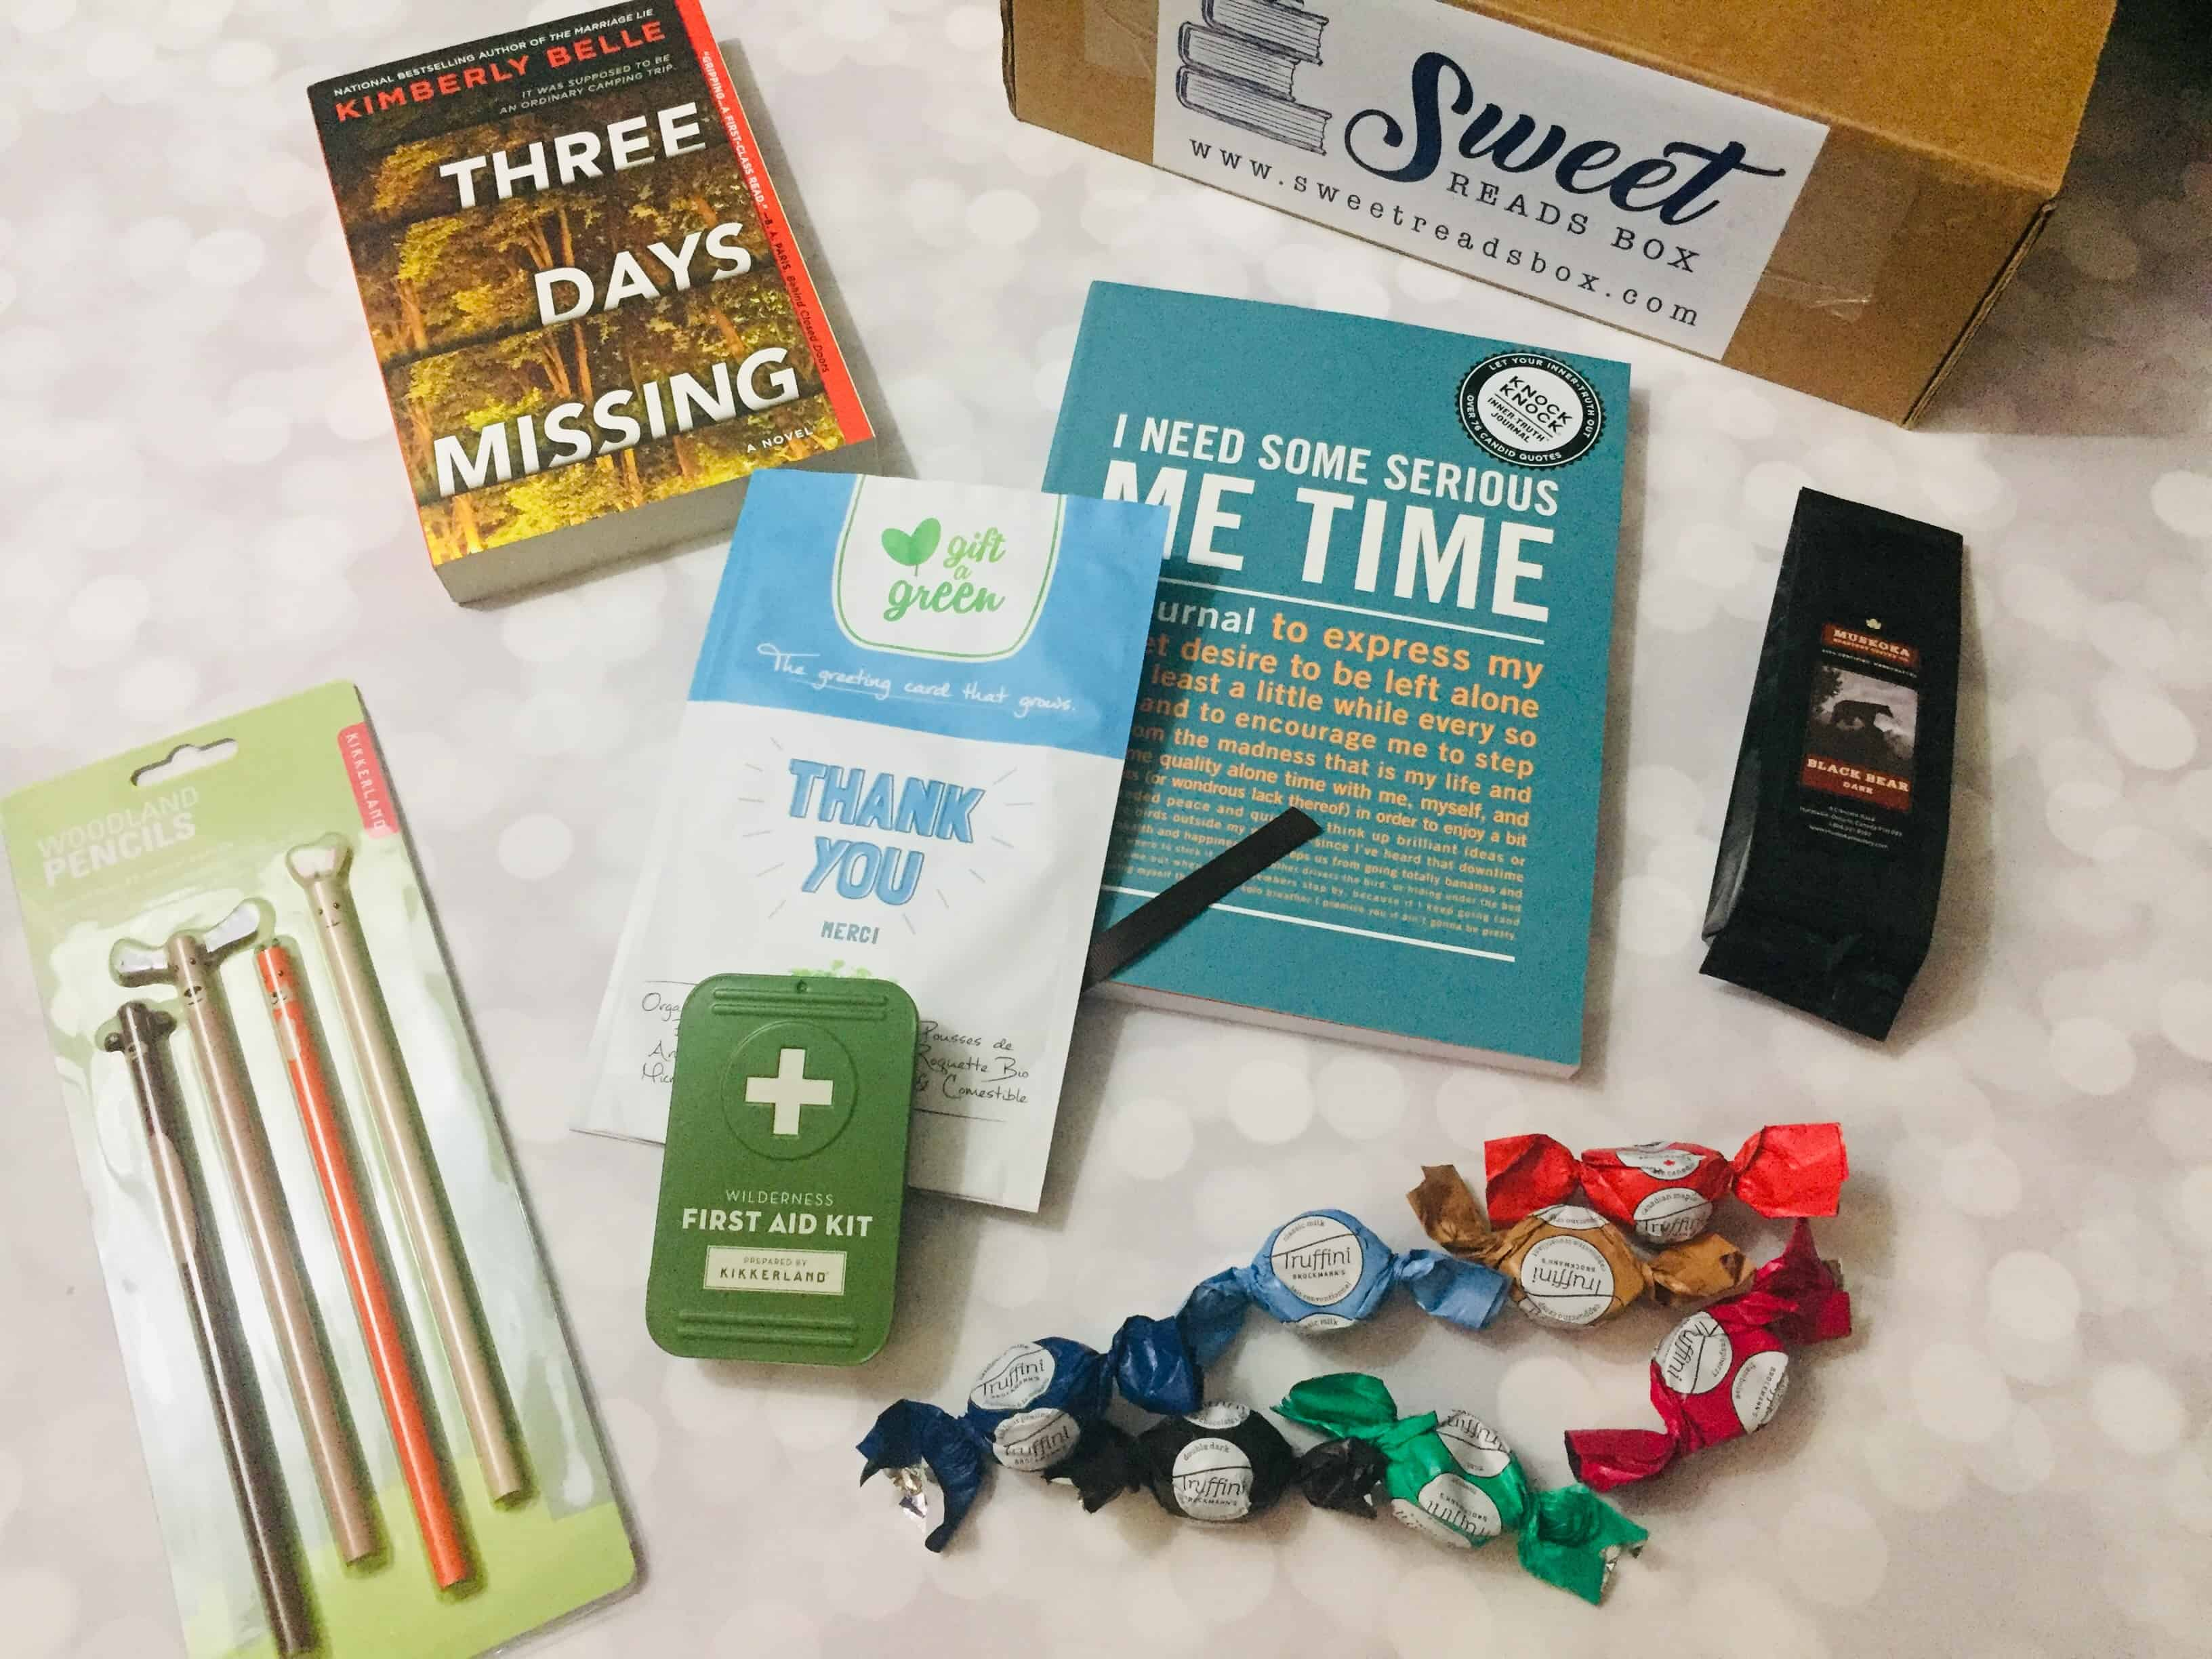 Sweet Reads Box October 2018 Subscription Box Review + Coupon